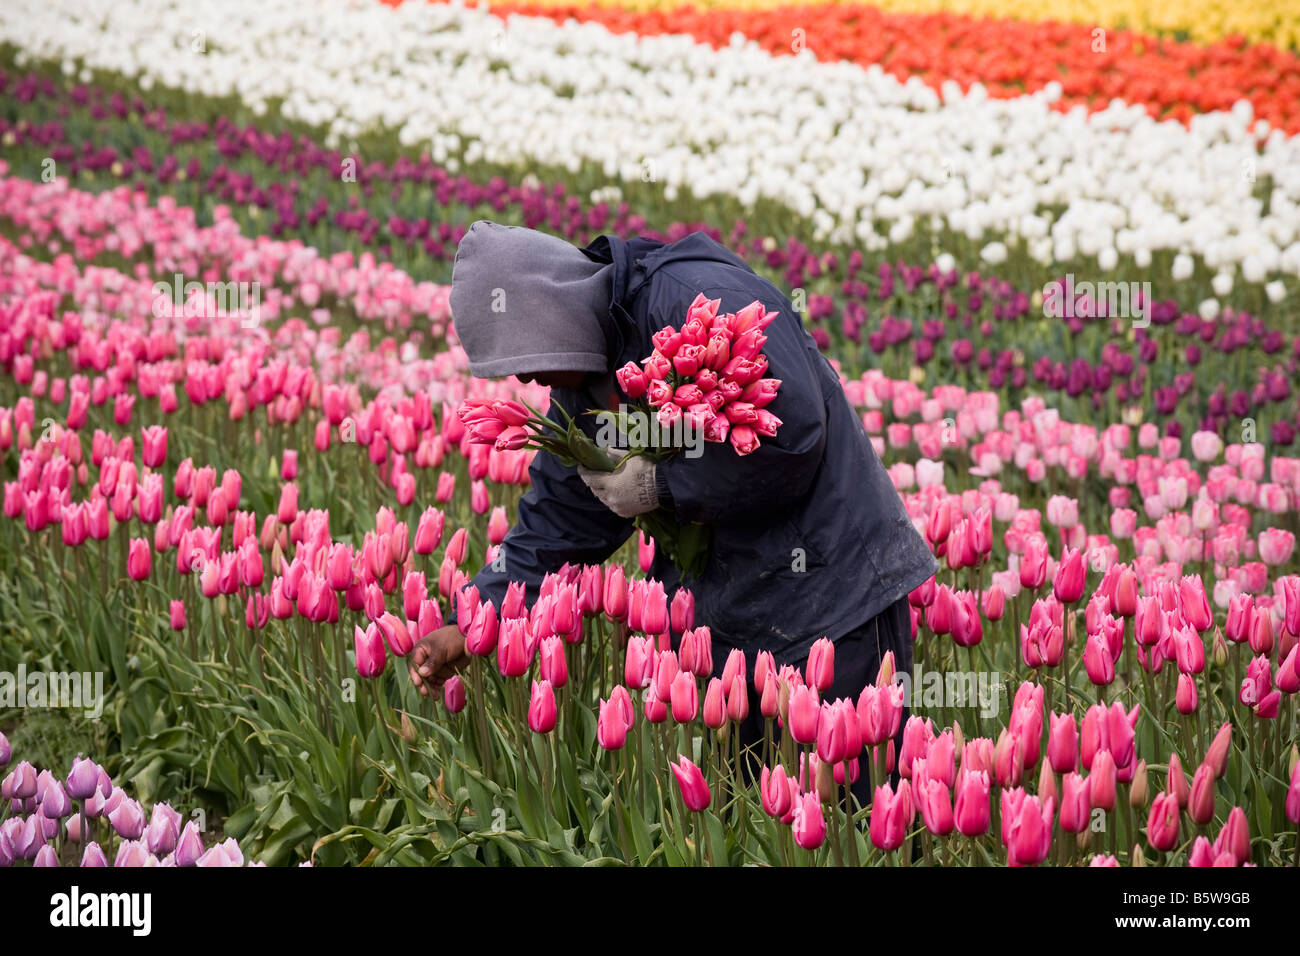 Farm worker in tulip agriculture field of cut flowers at Tulip Festival Skagit Valley Washington - Stock Image